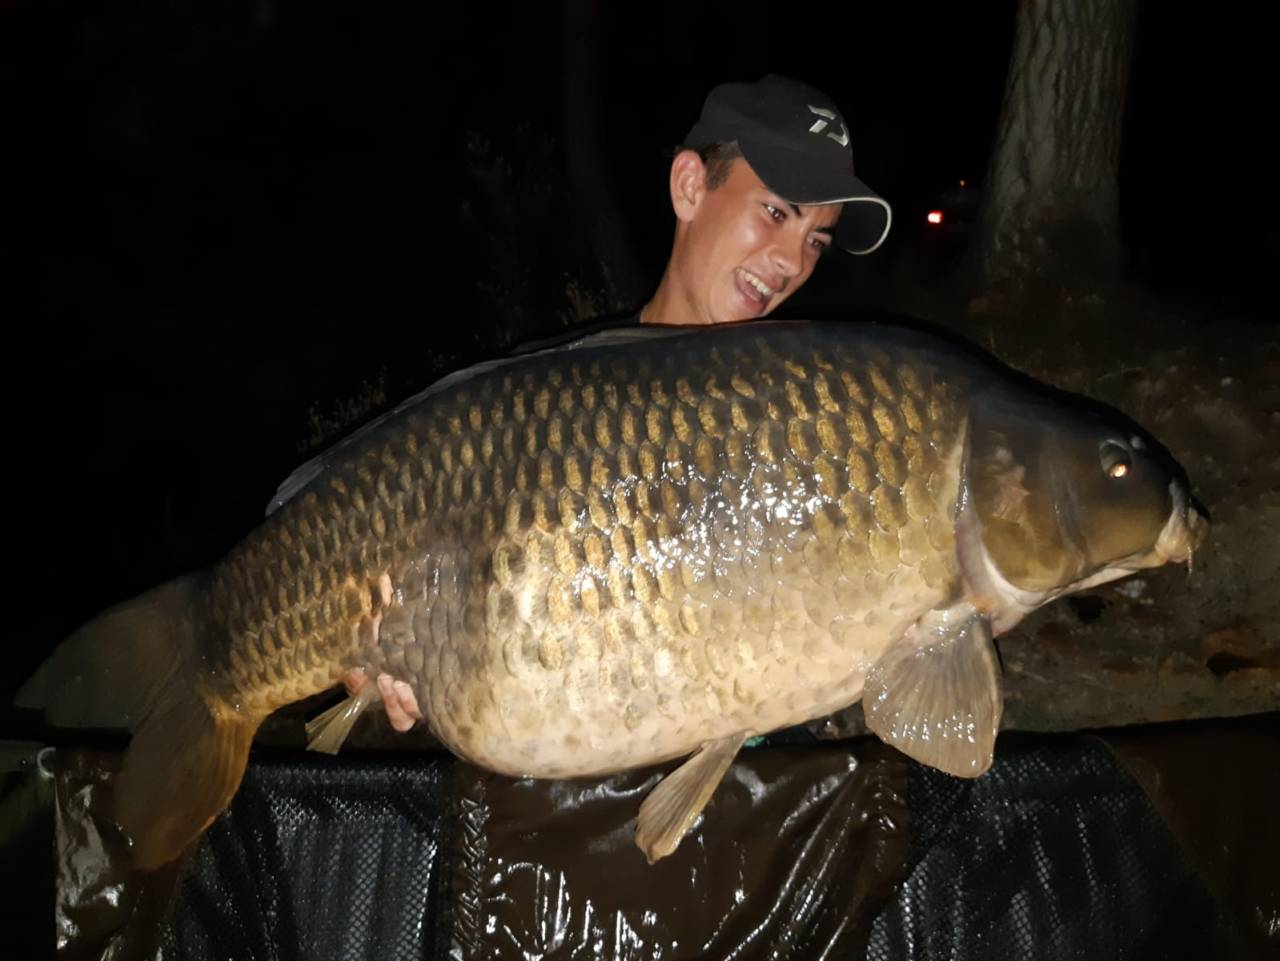 Manuel Bizzo italy carp fishing koiland lake